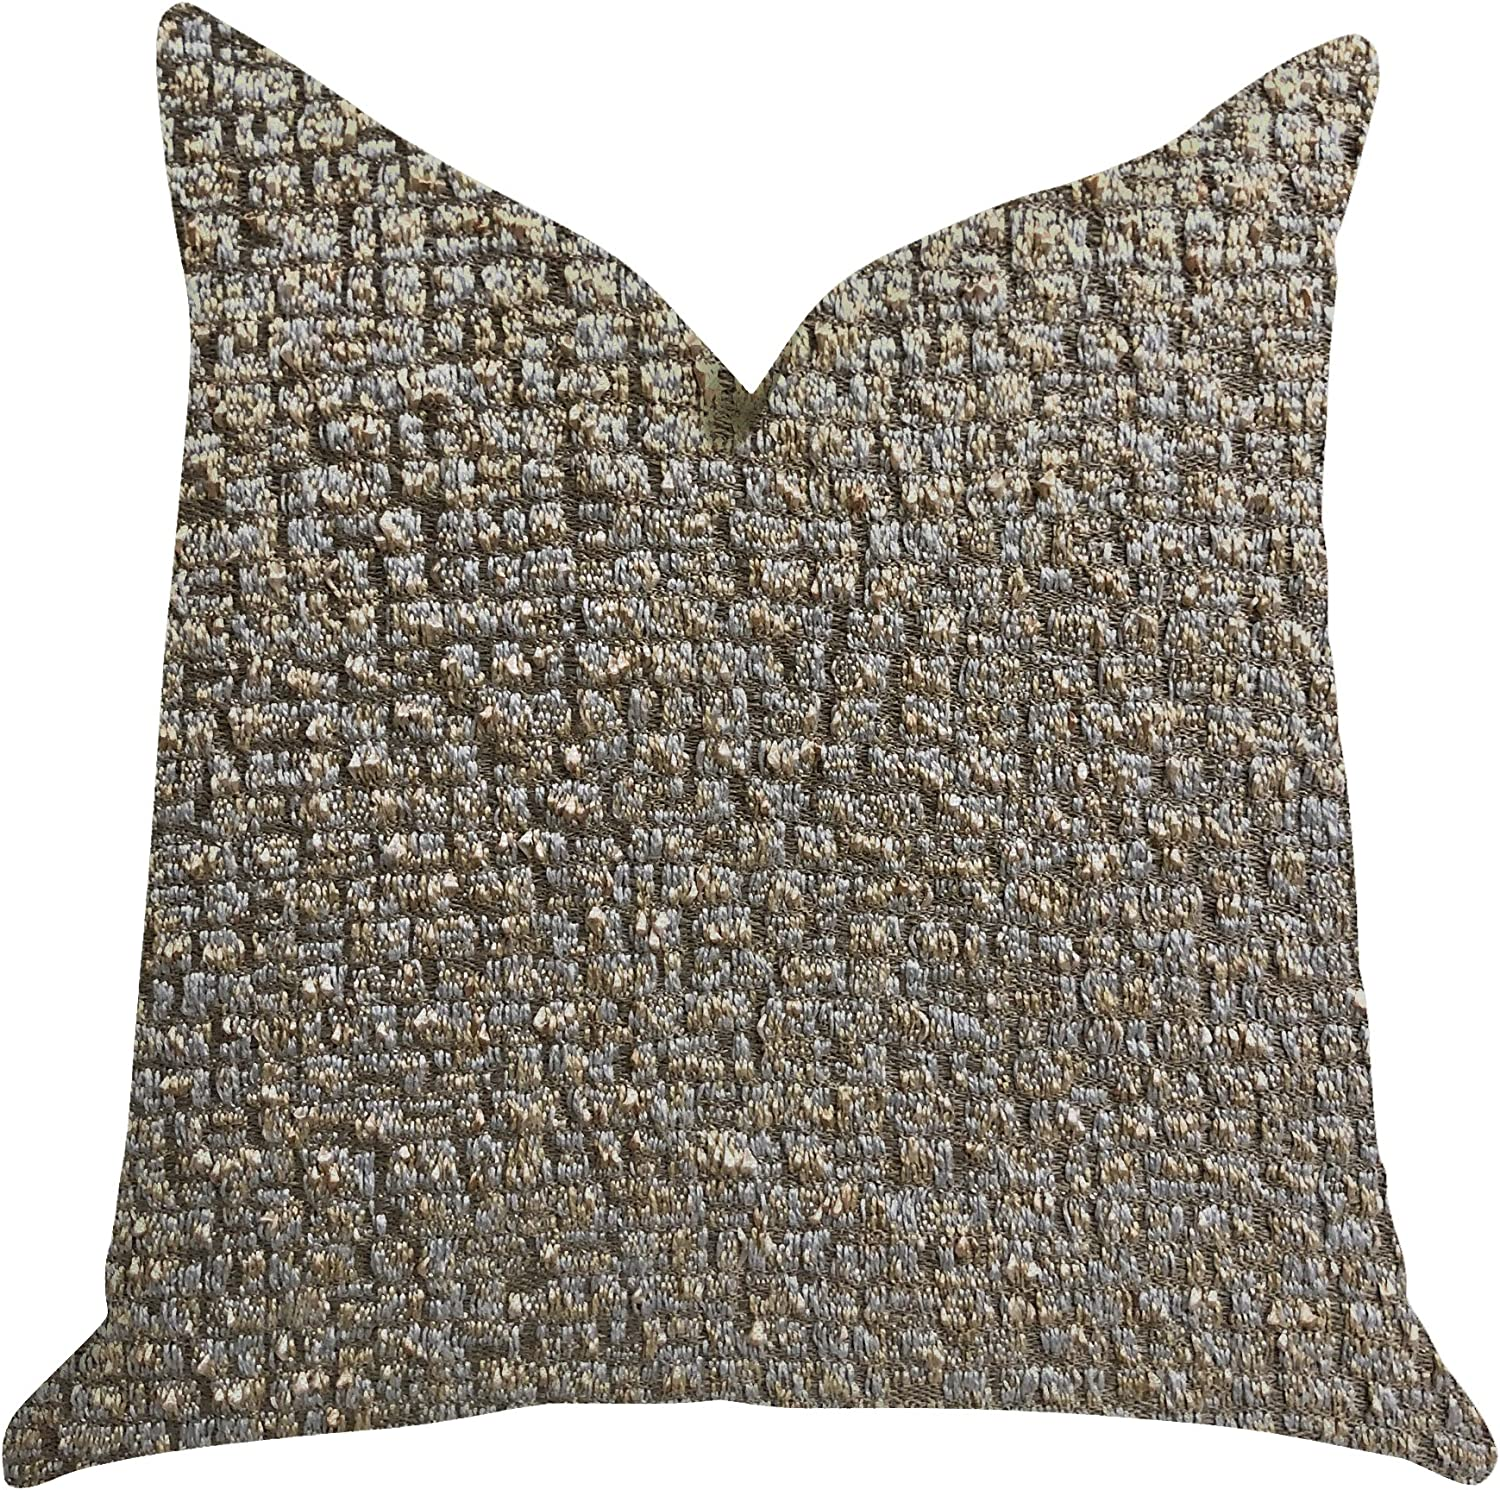 Plutus Brands Moondust Radiance Cheap bargain depot Double Throw P Sided King Luxury